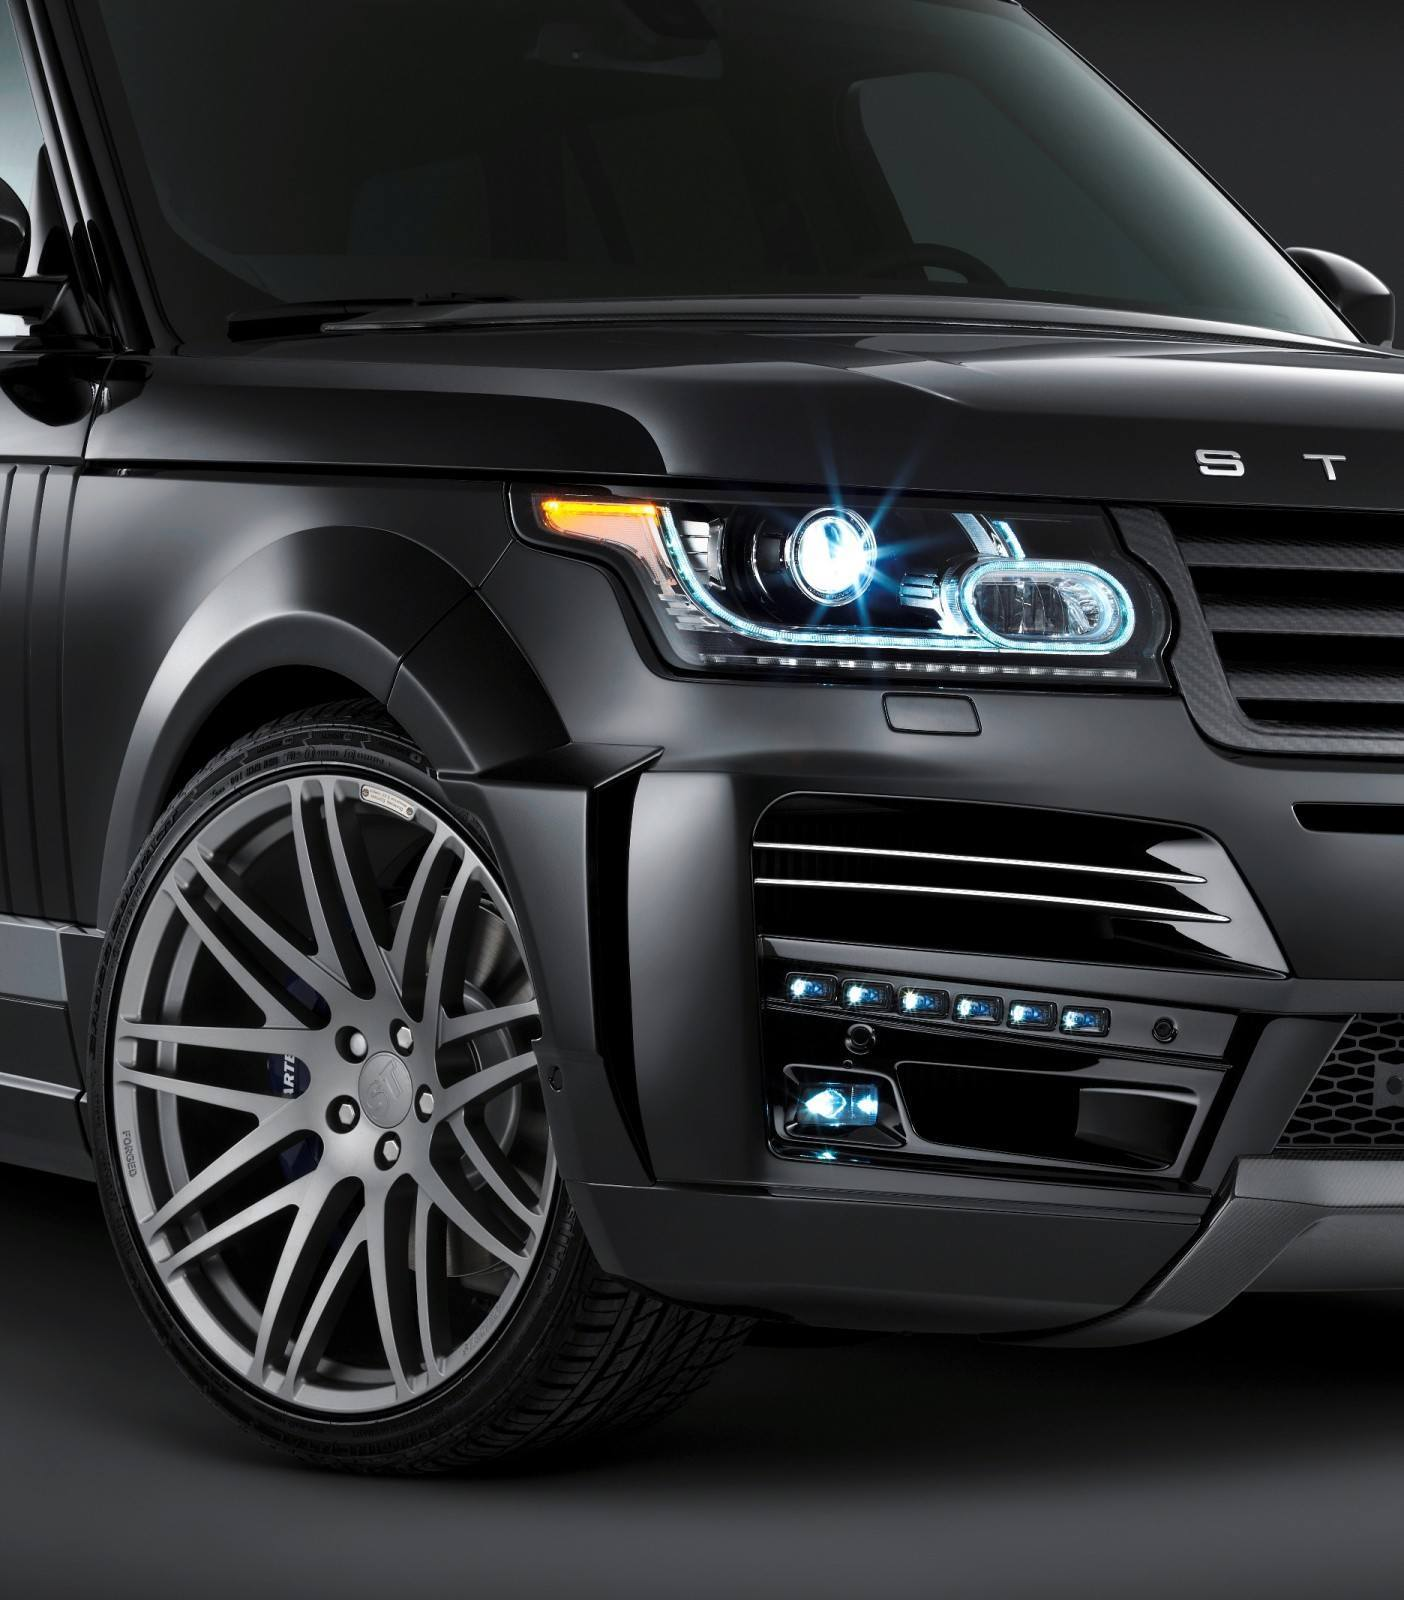 2013-2015 Range Rover By StarTech Brings Best of BRABUS Tech to Lux SUV King 66